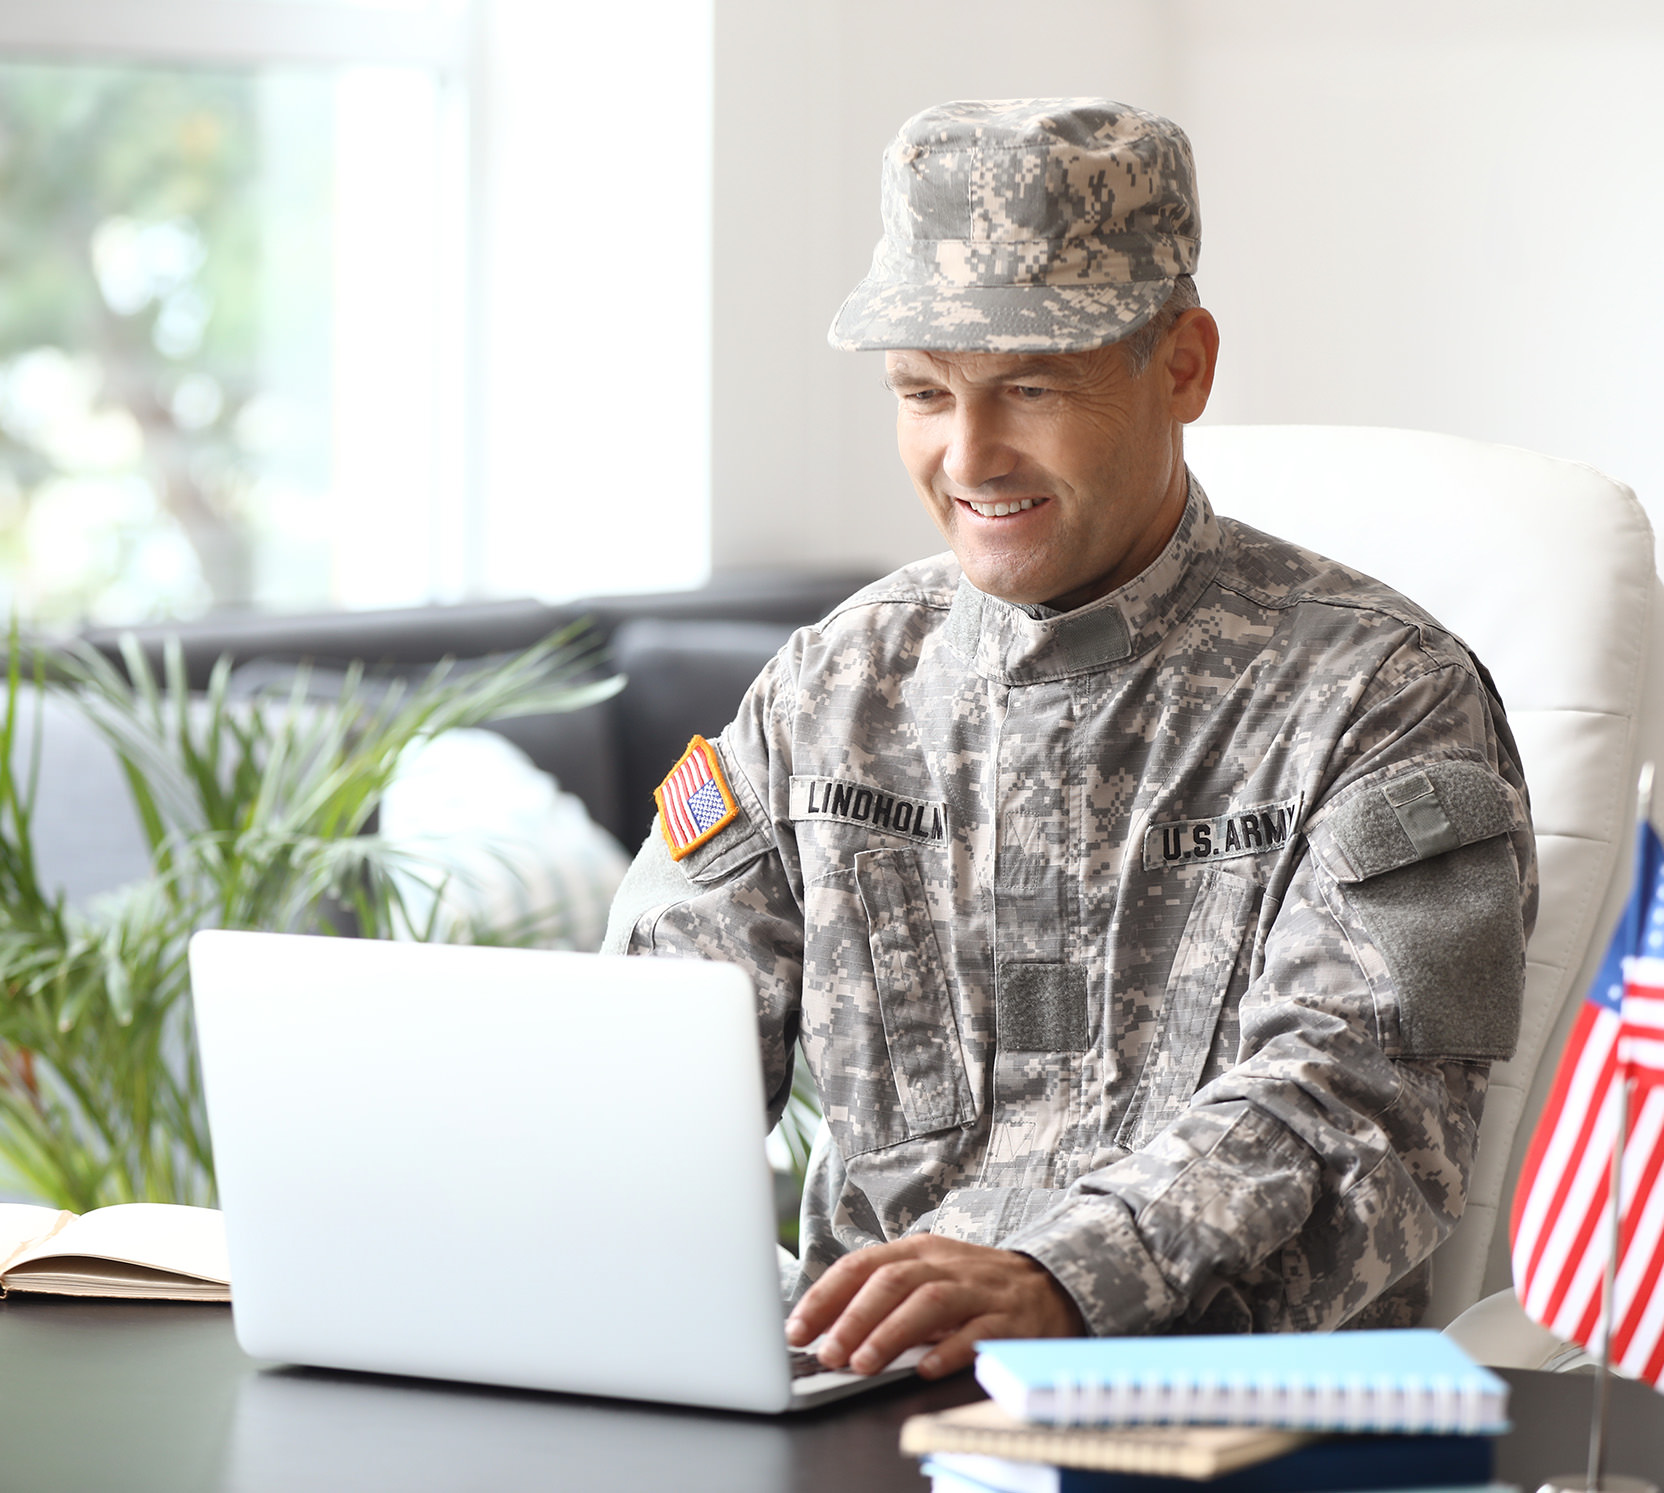 Inventory System Asset Tracking Full Solution for Military